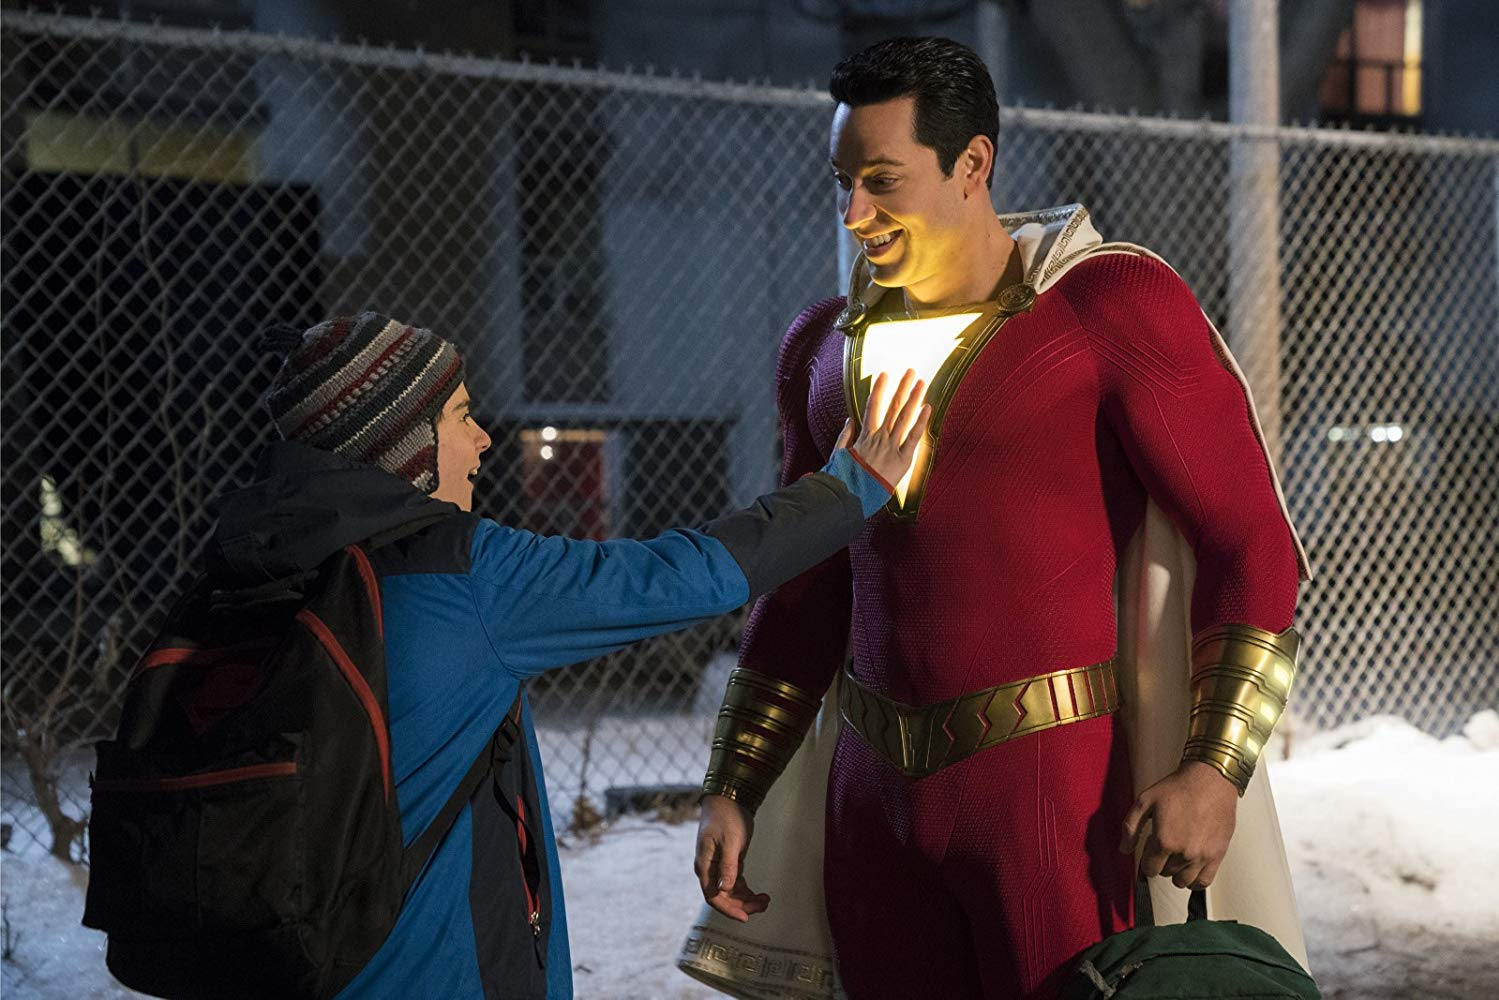 Shazam! is out in cinemas April 5th